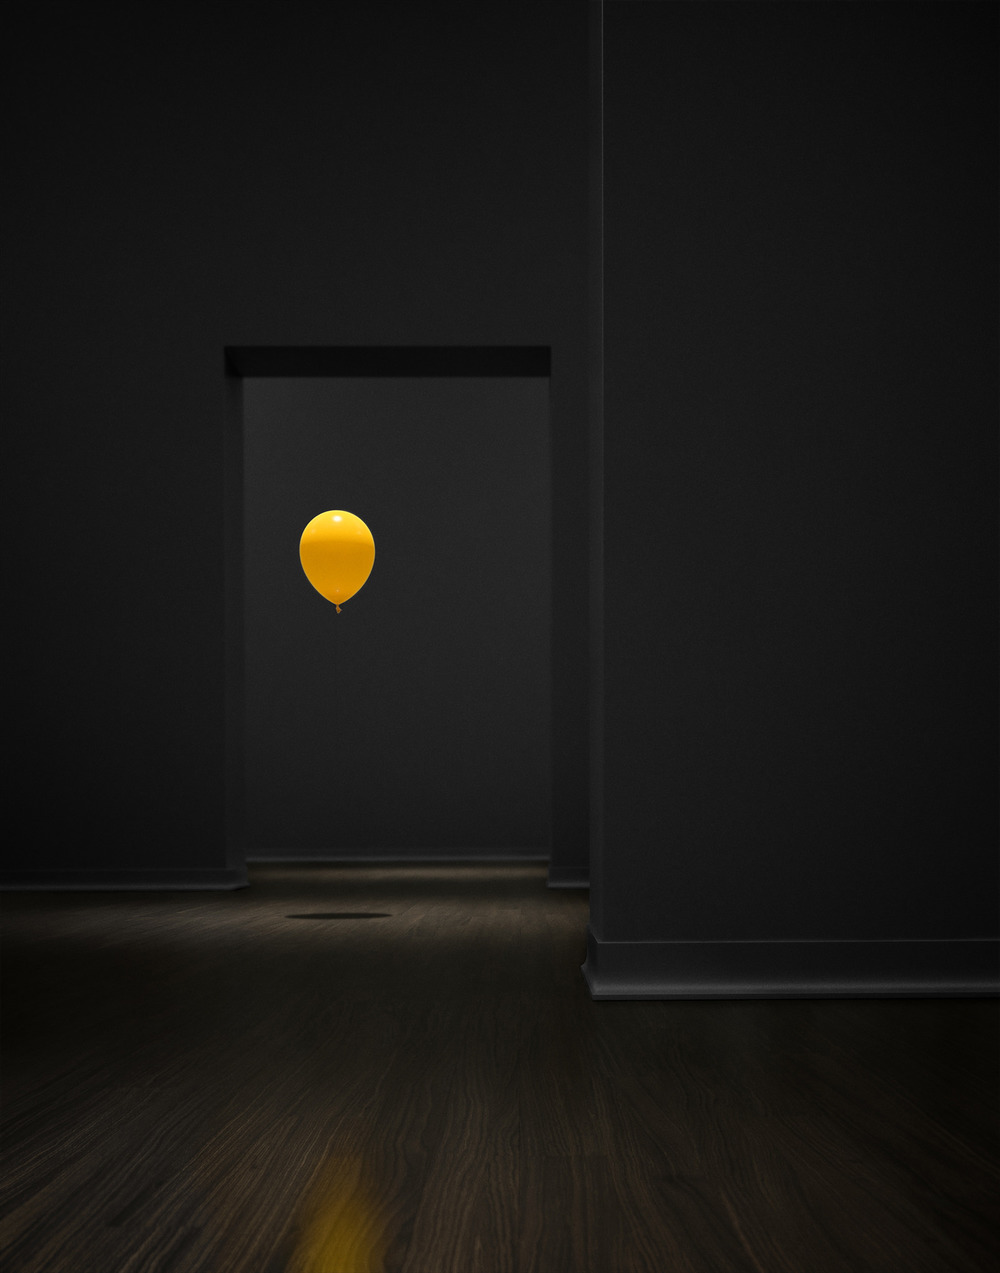 041Art_Gallery_Balloon.jpg